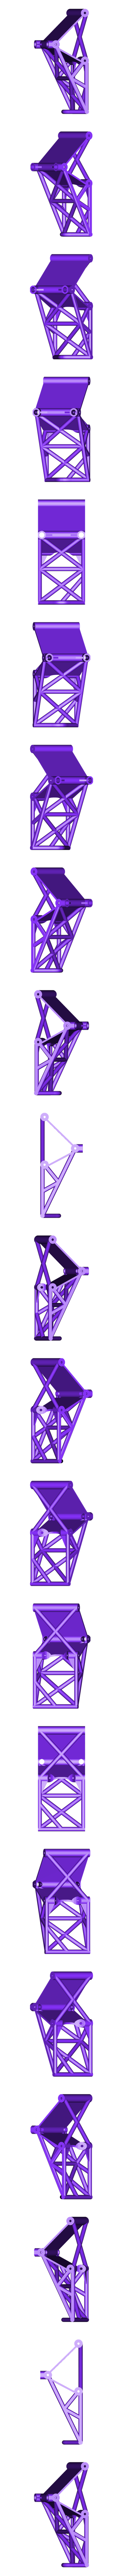 Frame02.stl Download free STL file Fully printable Monster Truck • 3D printer design, tahustvedt